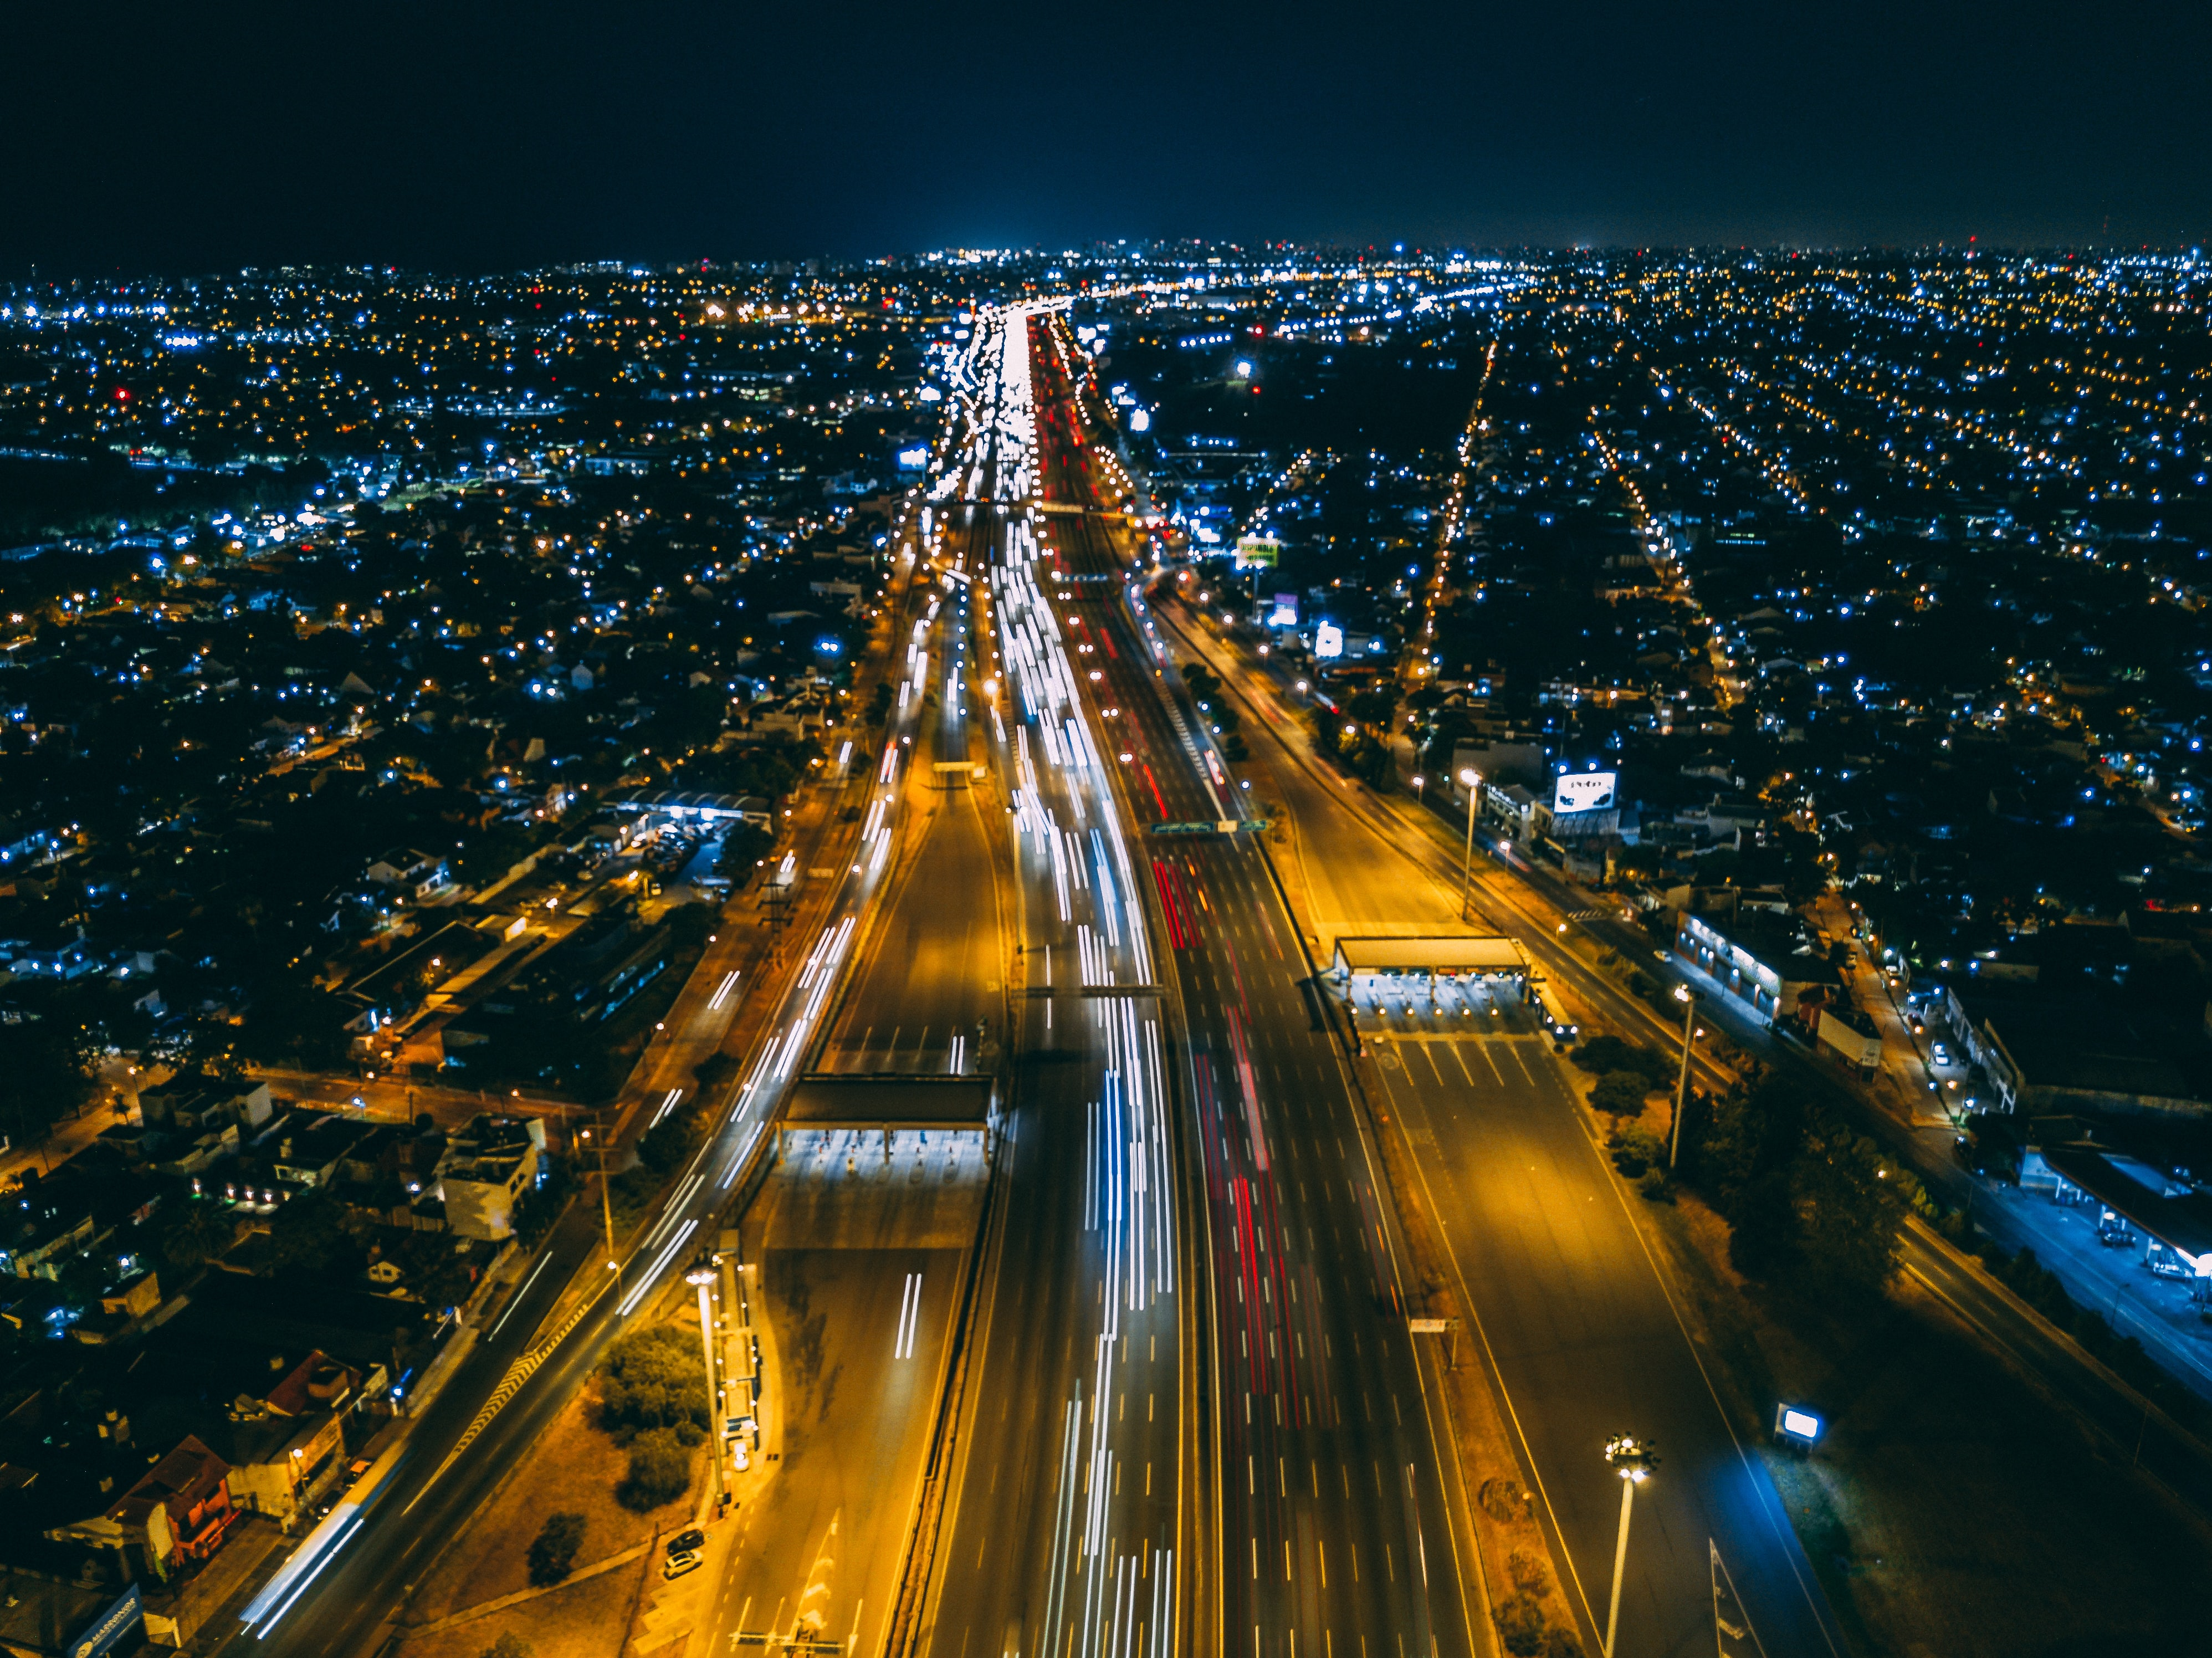 time-lapse photography of city buildings and road